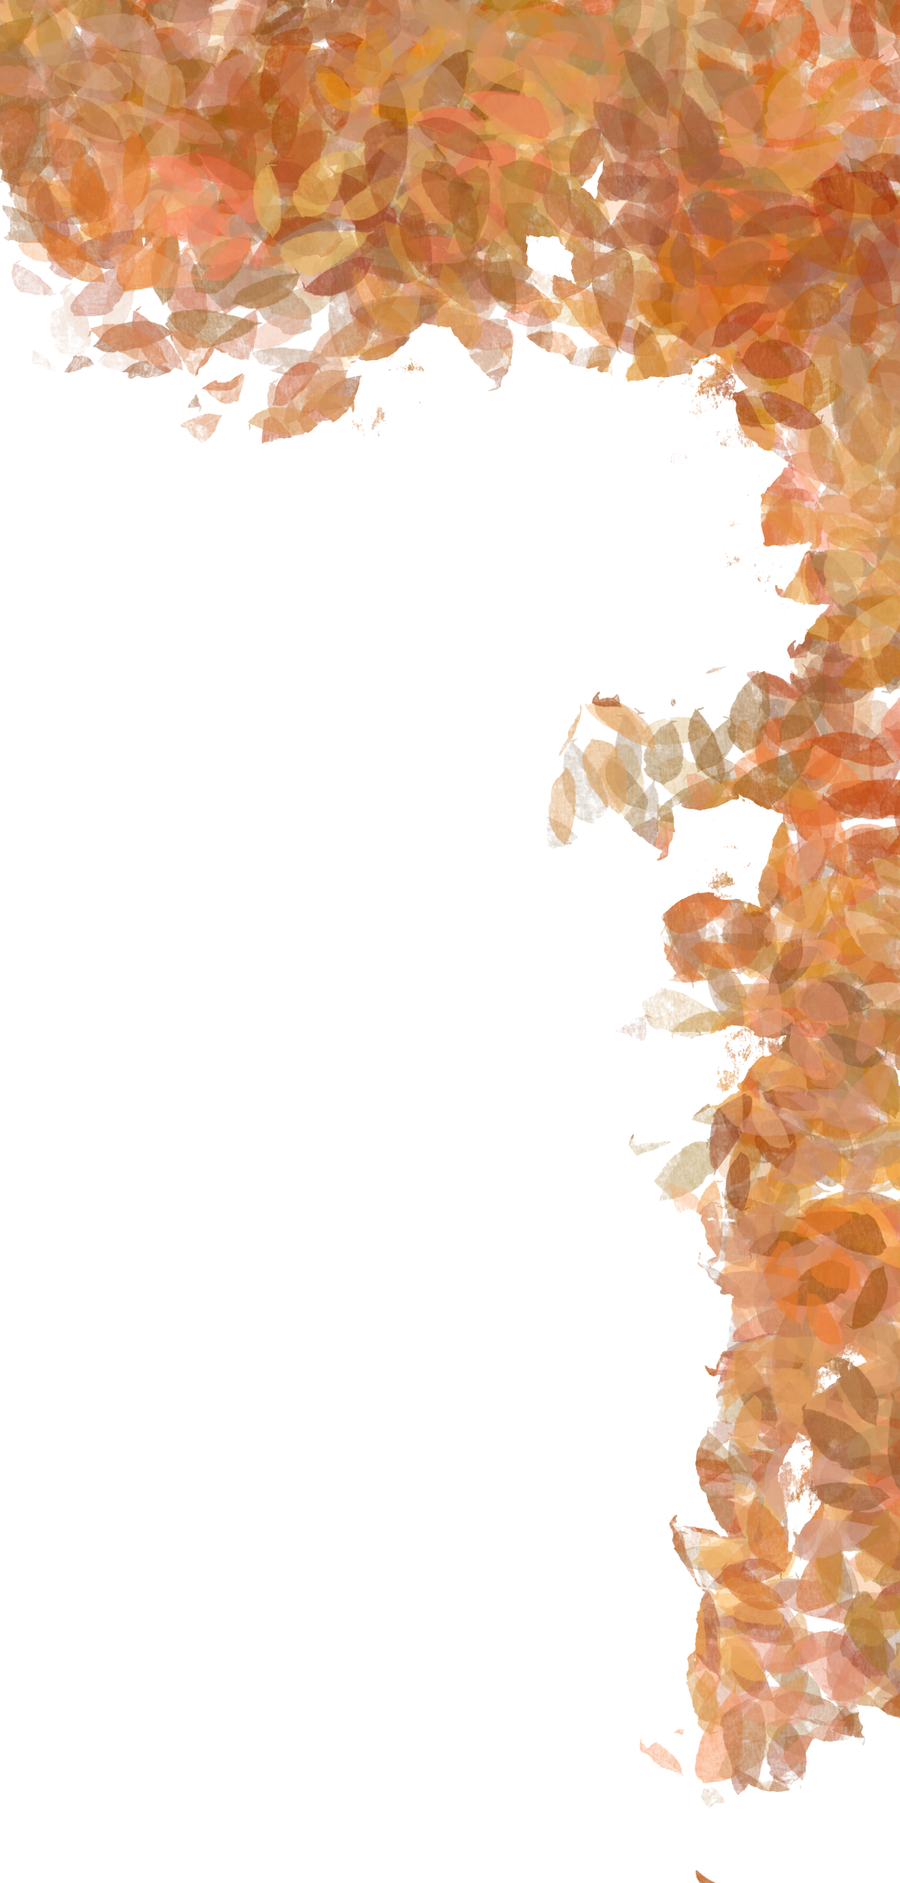 Autumn Custom Box Background by RaisloverSakura